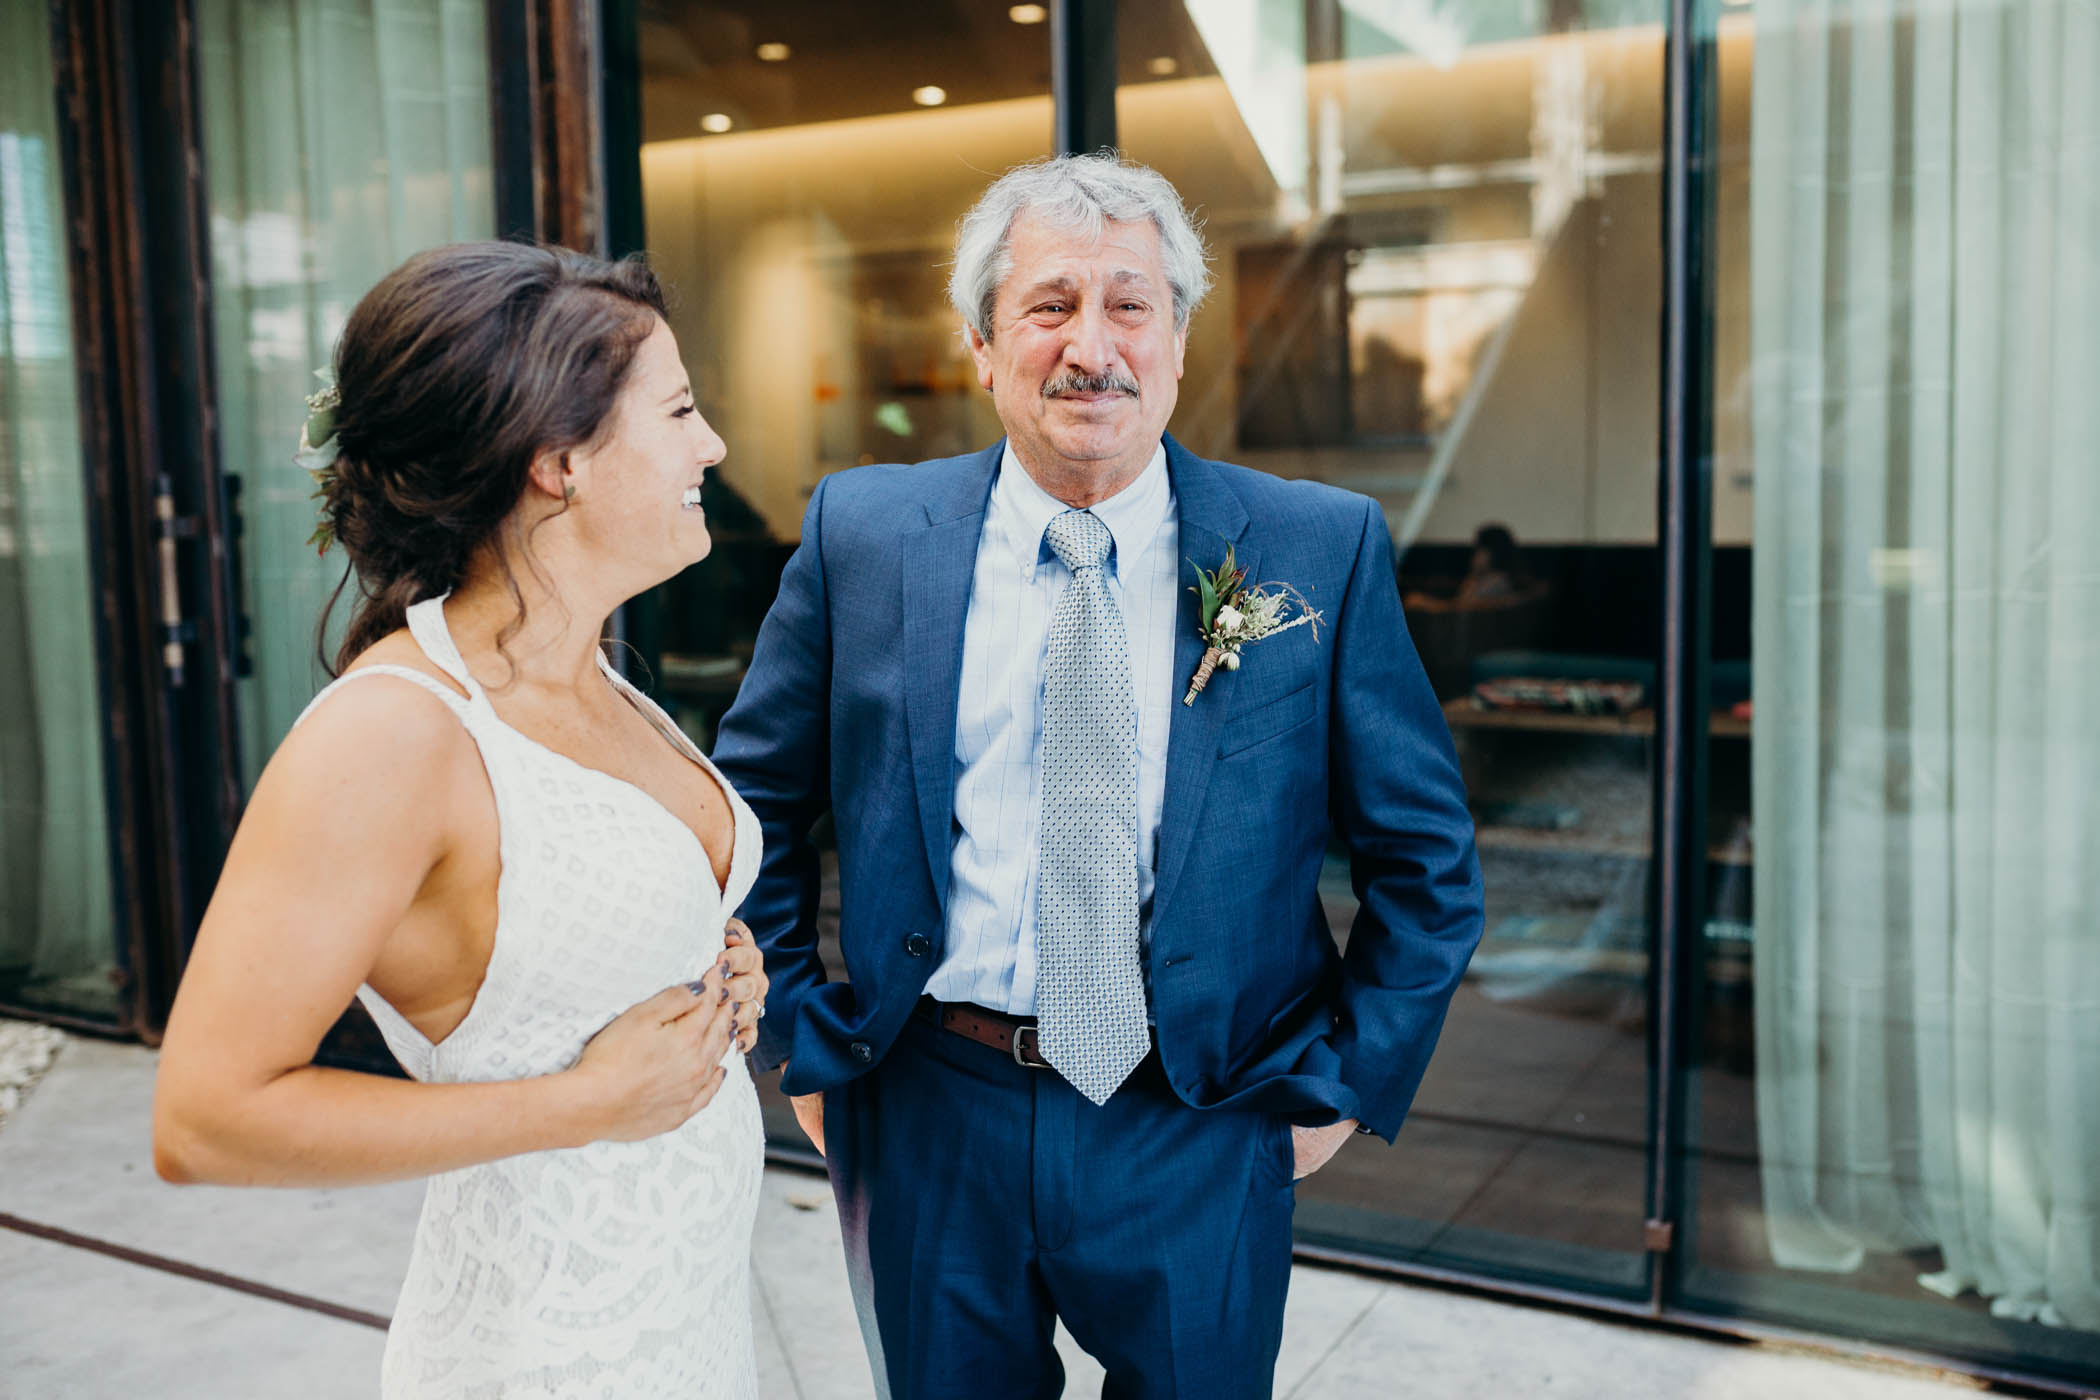 A daughter laughing while a dad is not trying to her on his daughter's wedding day.